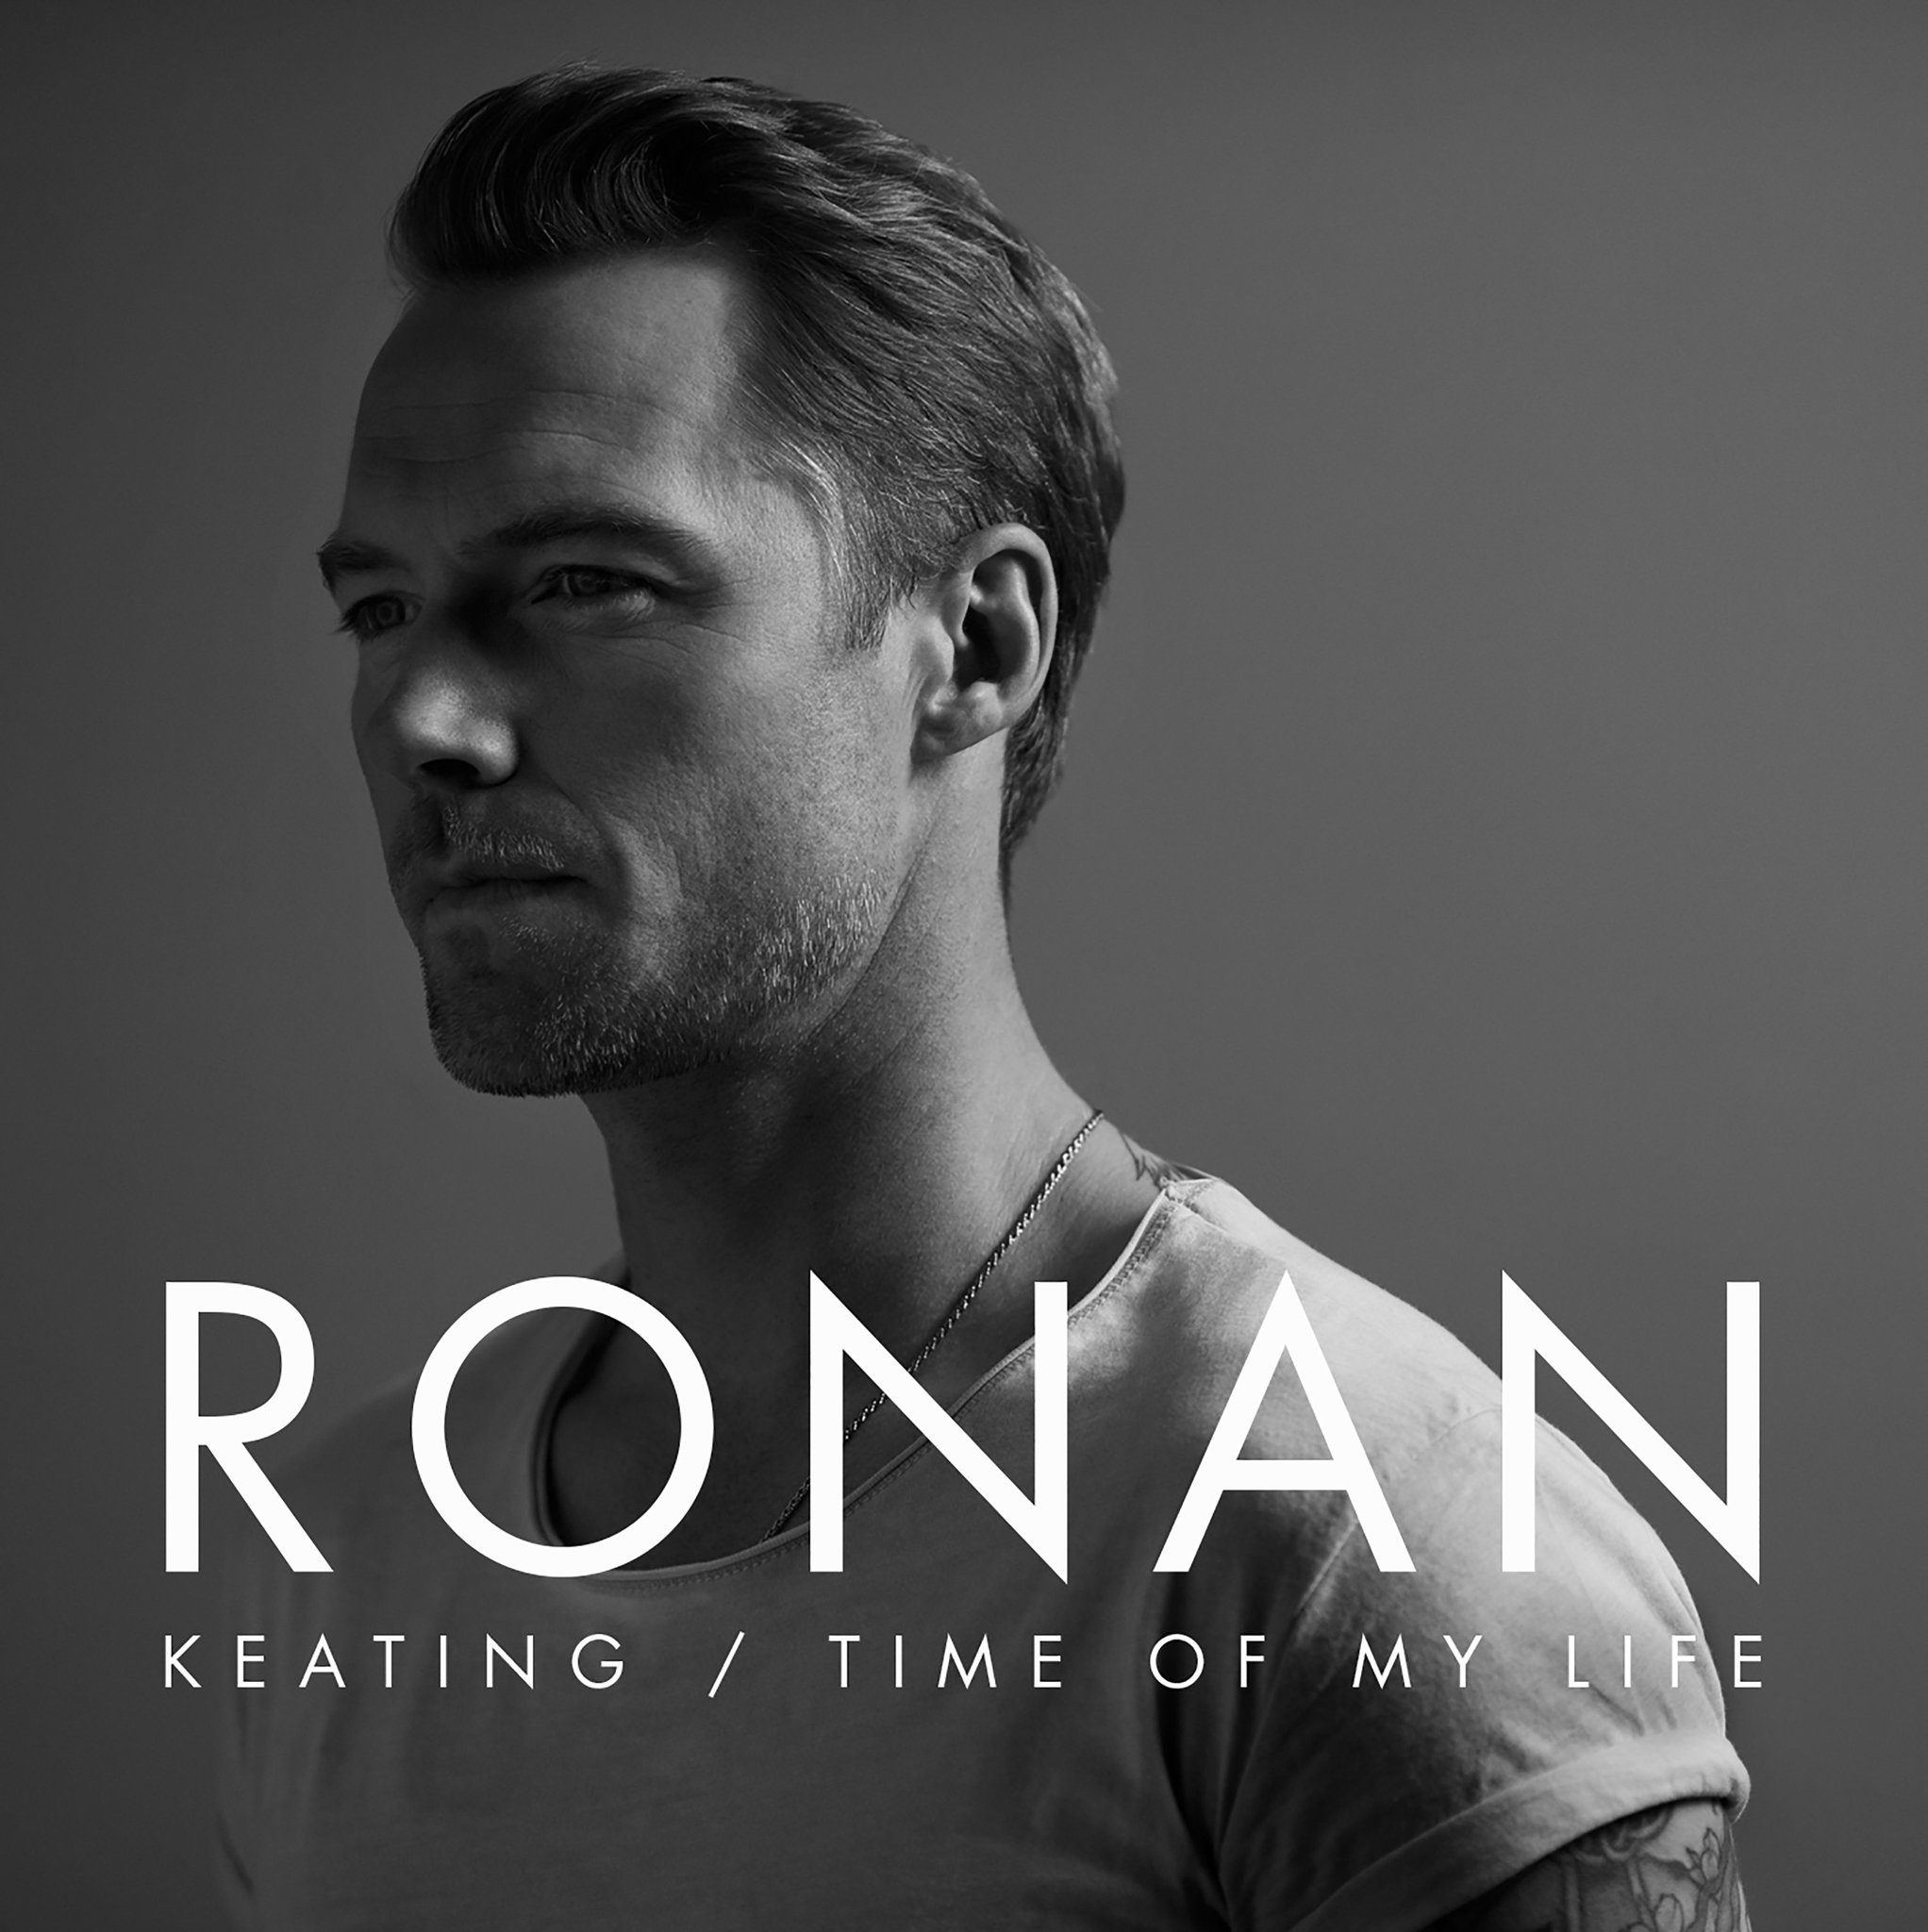 RT @DeccaRecords: We've decided 'Time Of My Life' is @ronanofficial's best album yet and it's OUT NOW! LISTEN: https://t.co/zJipGcxAxx http…